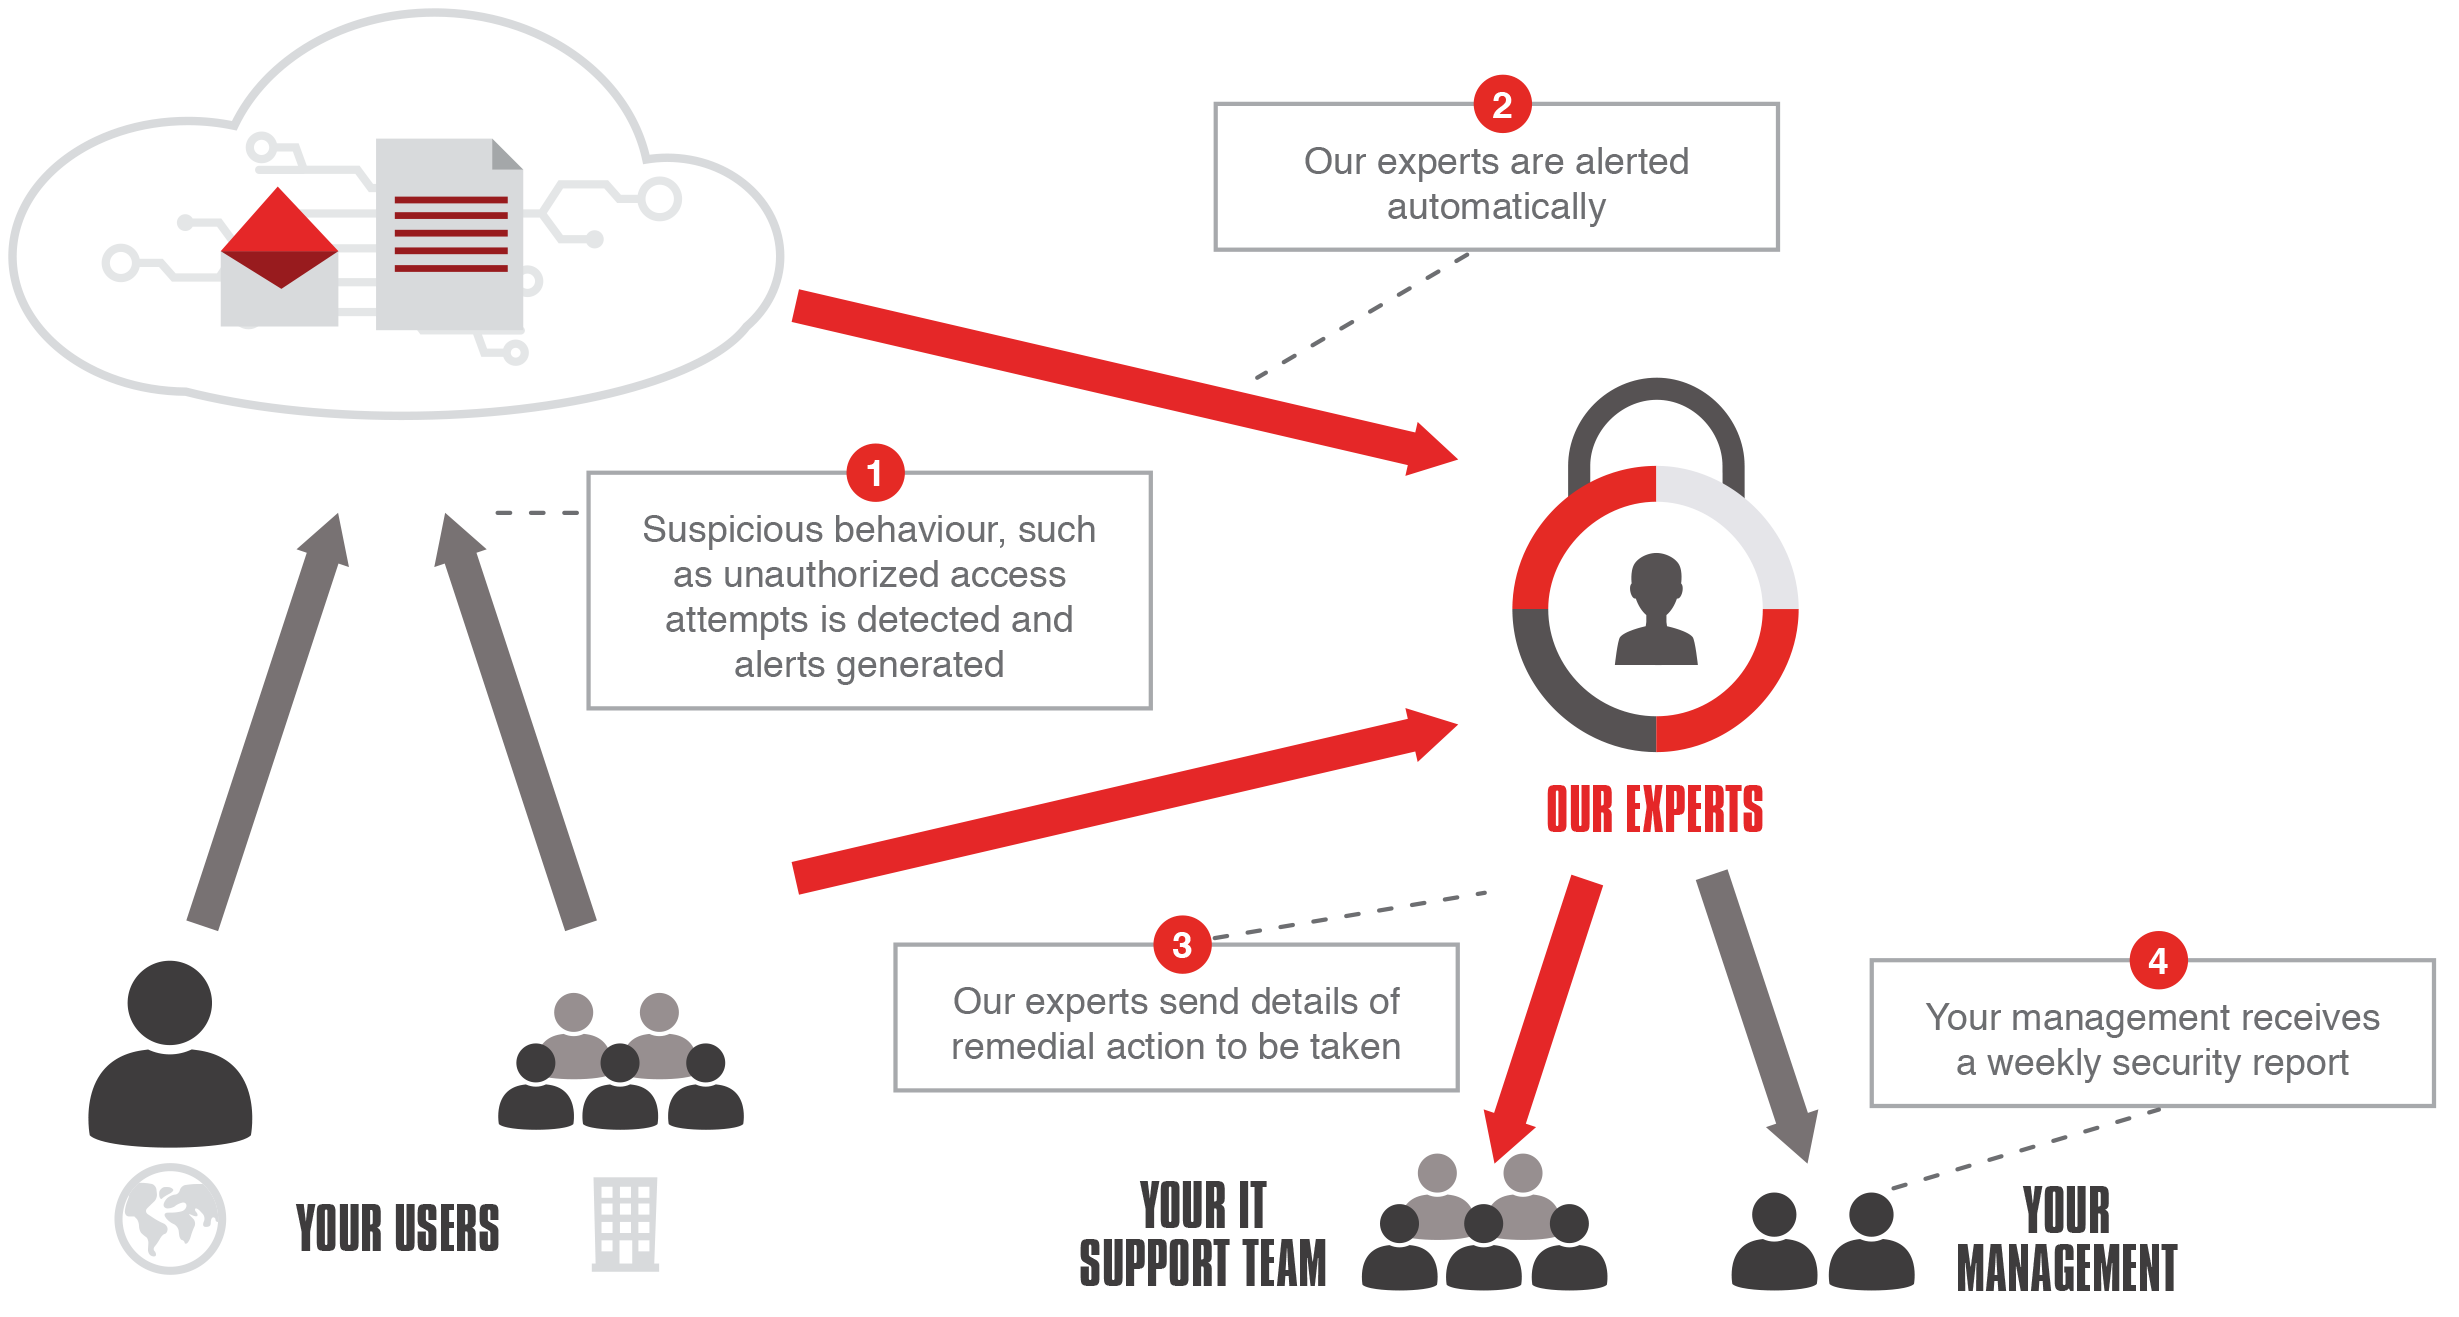 CLOUDSECURITY+ How it works process illustration